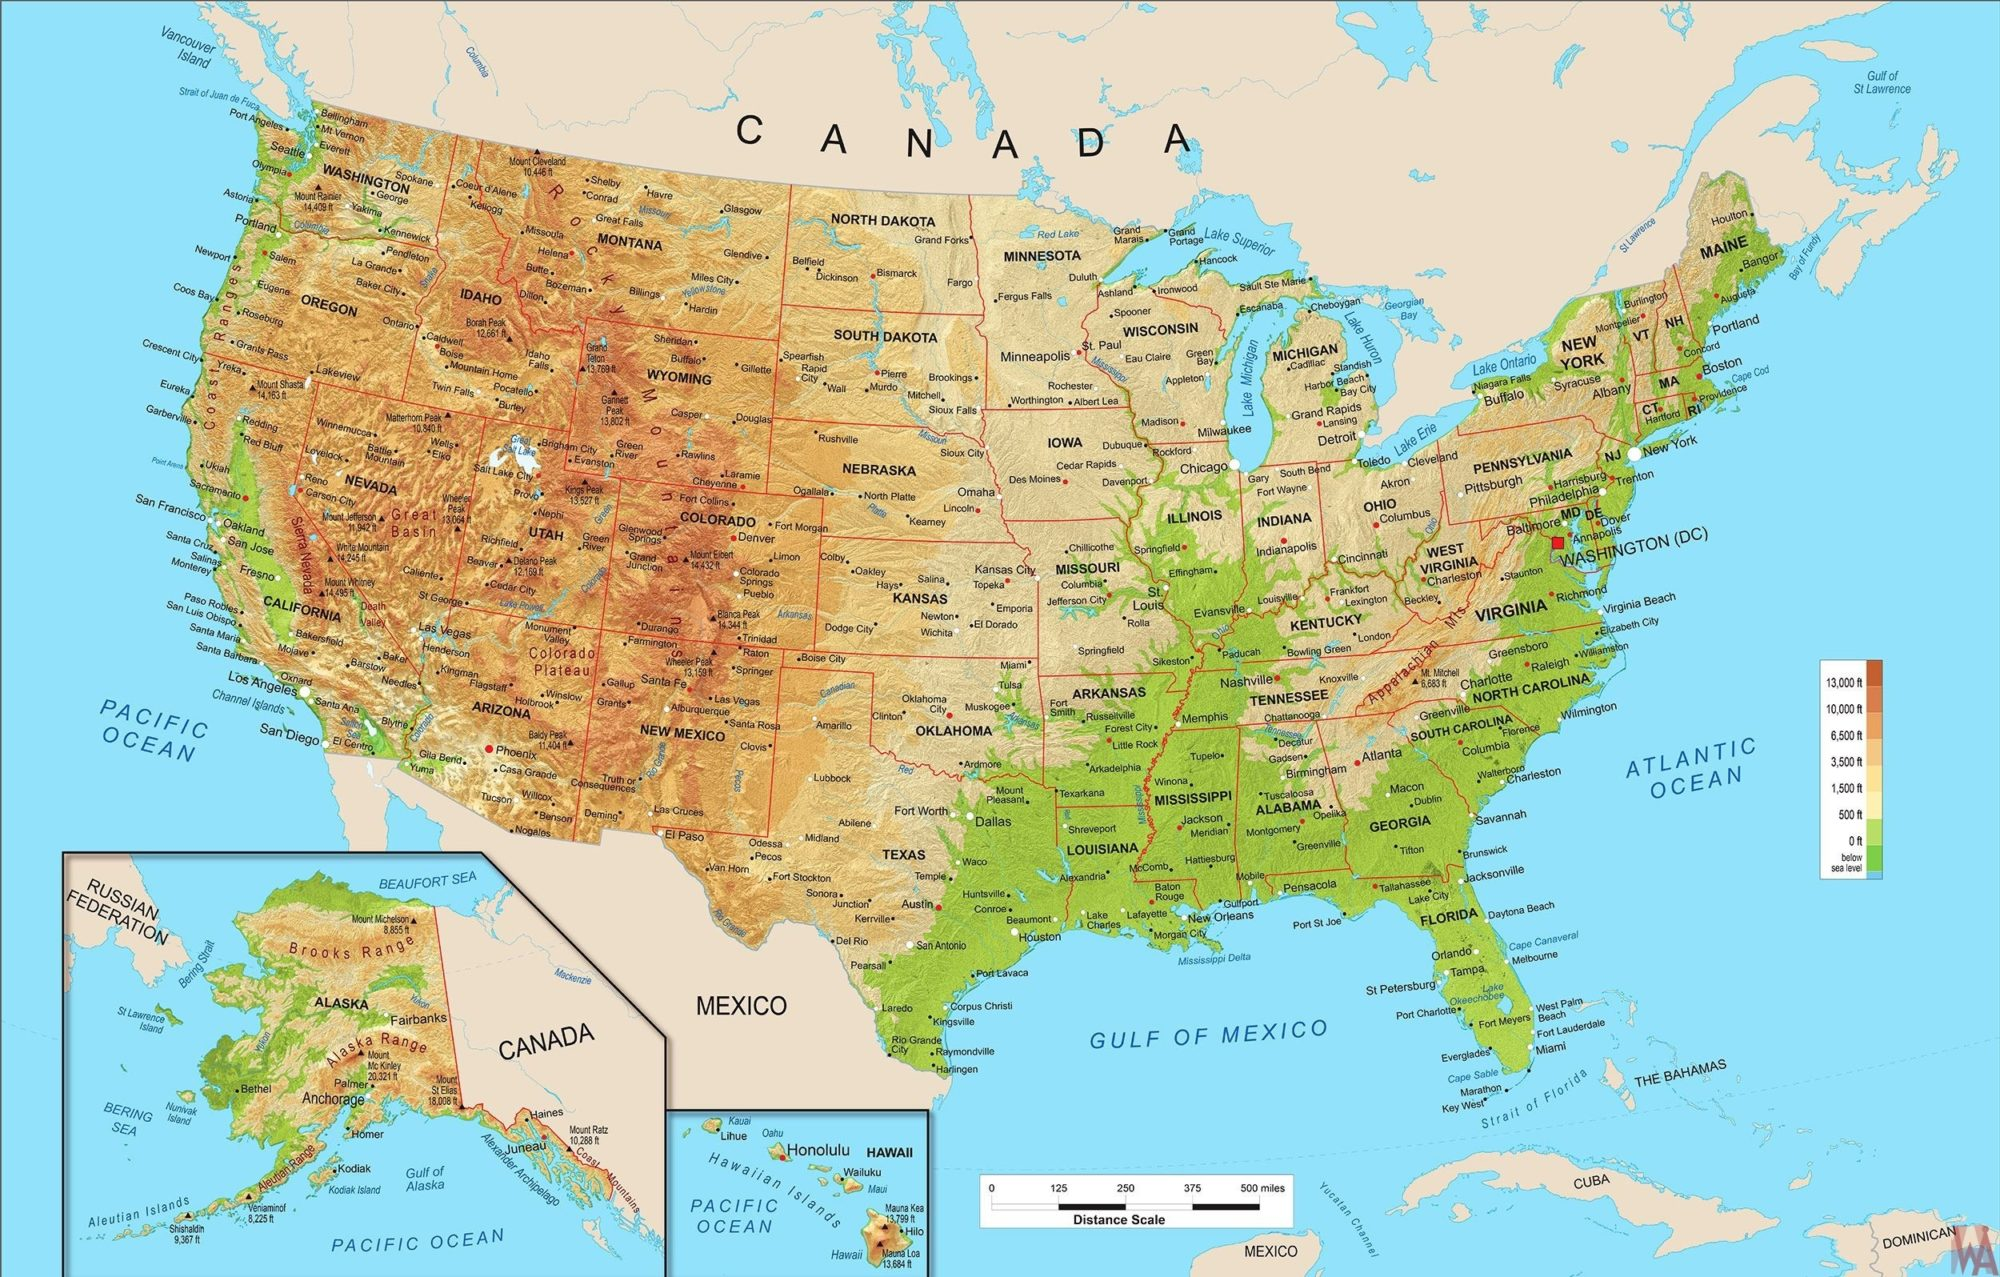 Physical Maps Of The USA | WhatsAnswer on people map of usa, geophysical map of usa, territorial map of usa, view map of usa, physical and political map of usa, elevation map of usa, utm map of usa, functional map of usa, exotic map of usa, regional map of usa, cork map of usa, socioeconomic map of usa, map of the usa, map of usa map of usa, clickable map of usa, geographical map united states, georgia physical map of usa, cultural map of usa, climate map of usa, industrial map of usa,